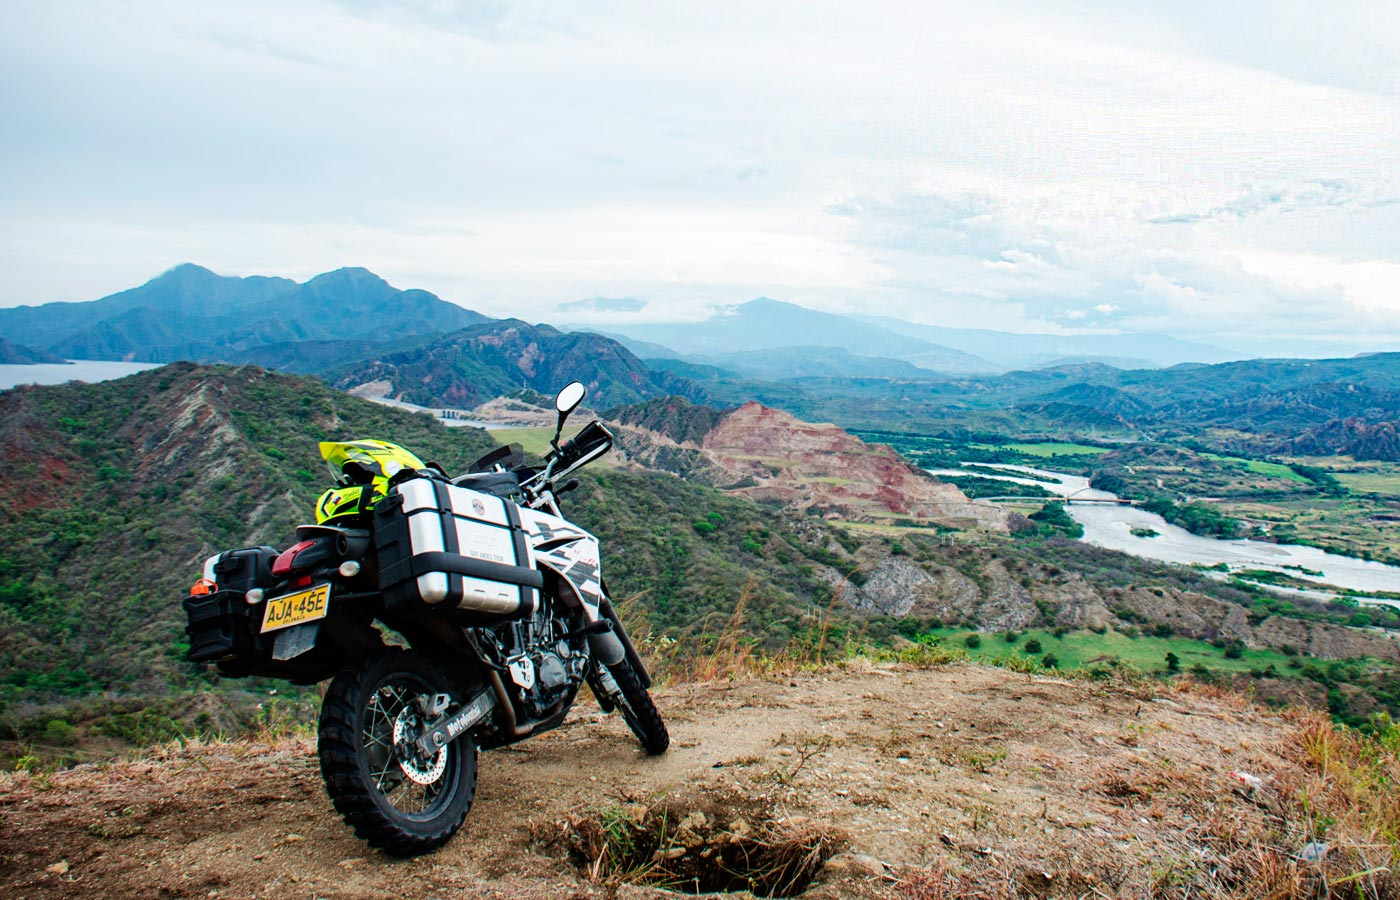 Givi-andes-tour-Colombia8.jpeg